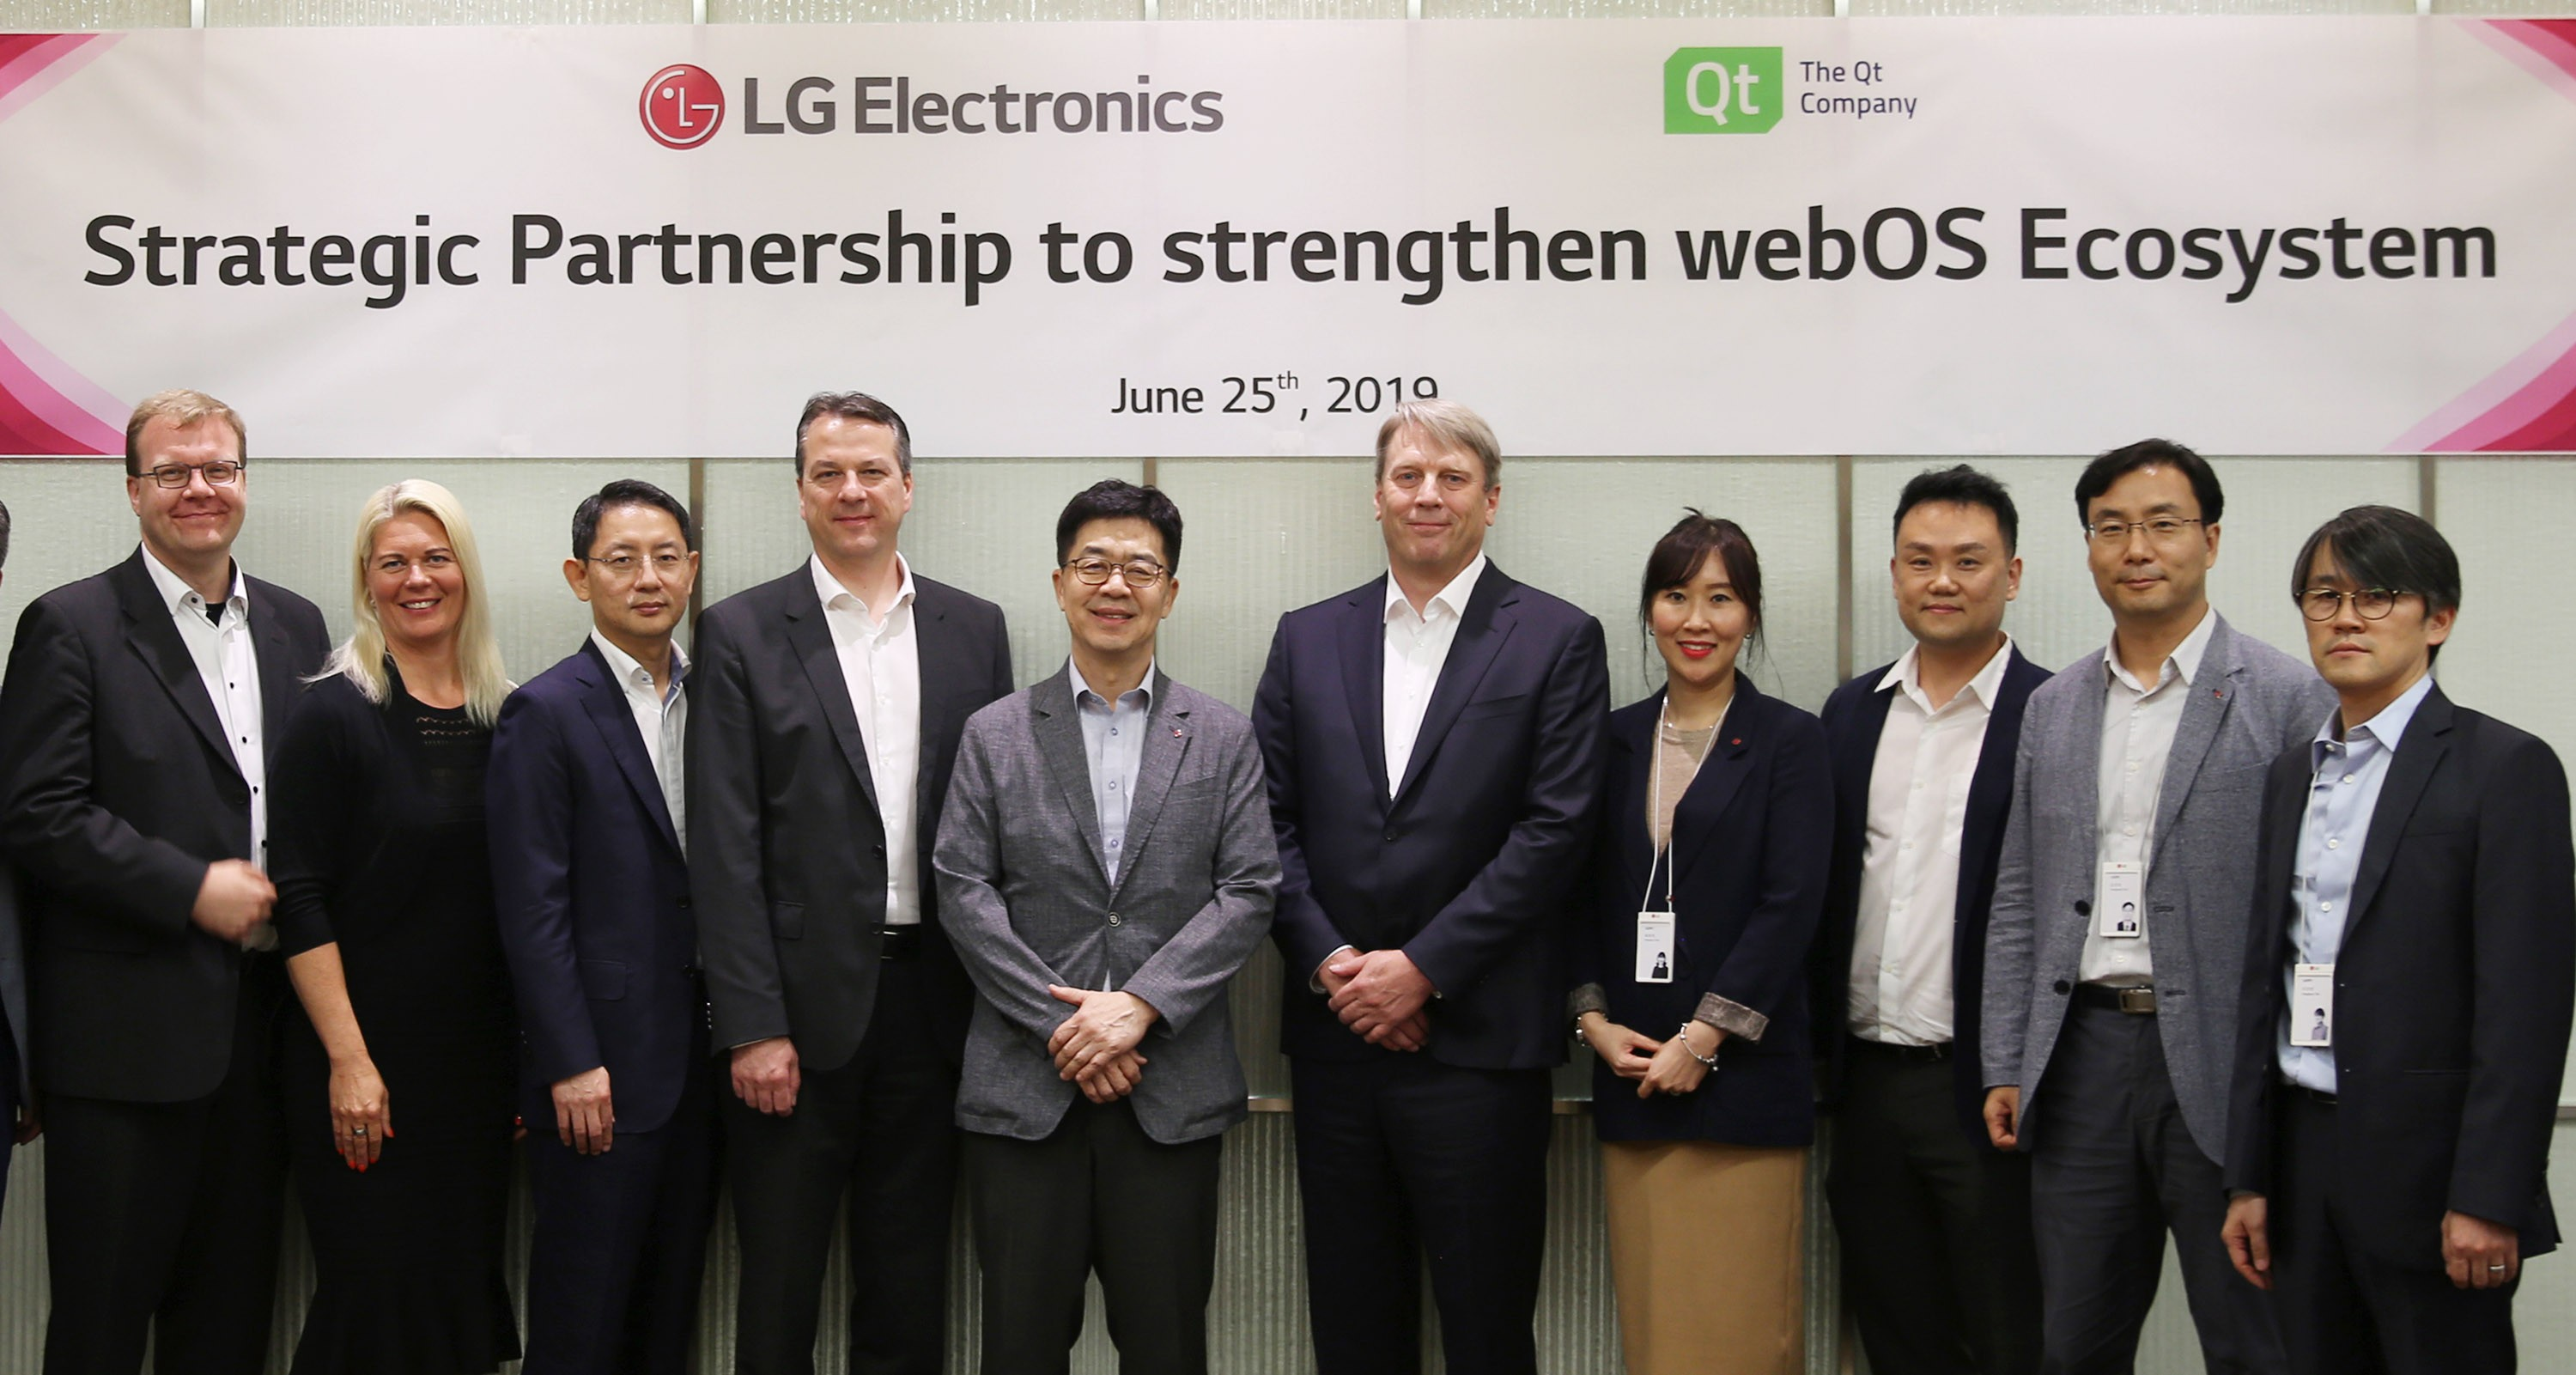 Dr. I.P. Park, president and Chief Technology Officer of LG Electronics and Juha Varelius, CEO of Qt, take a picture with delegates.